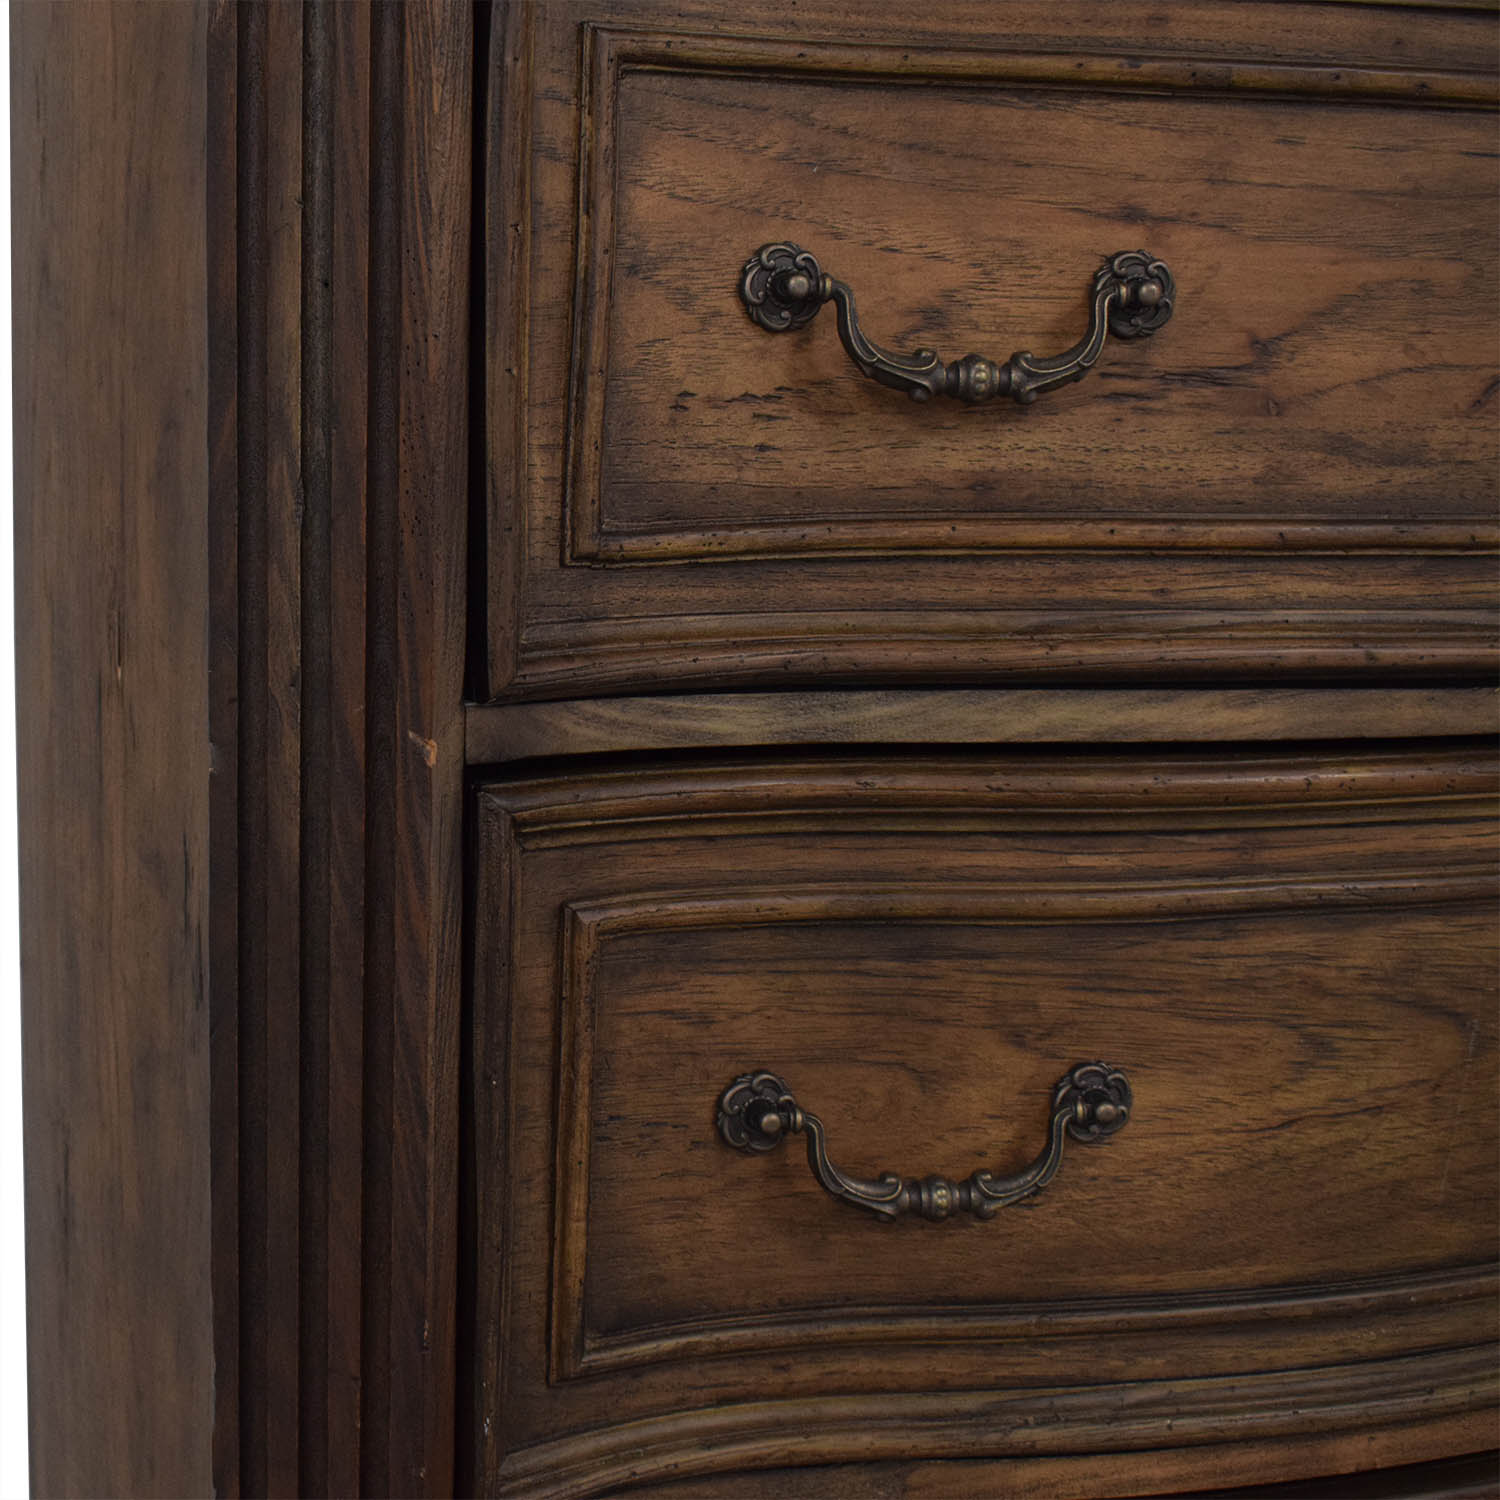 Hooker Furniture Hooker Furniture Rhapsody Five Drawer Chest second hand